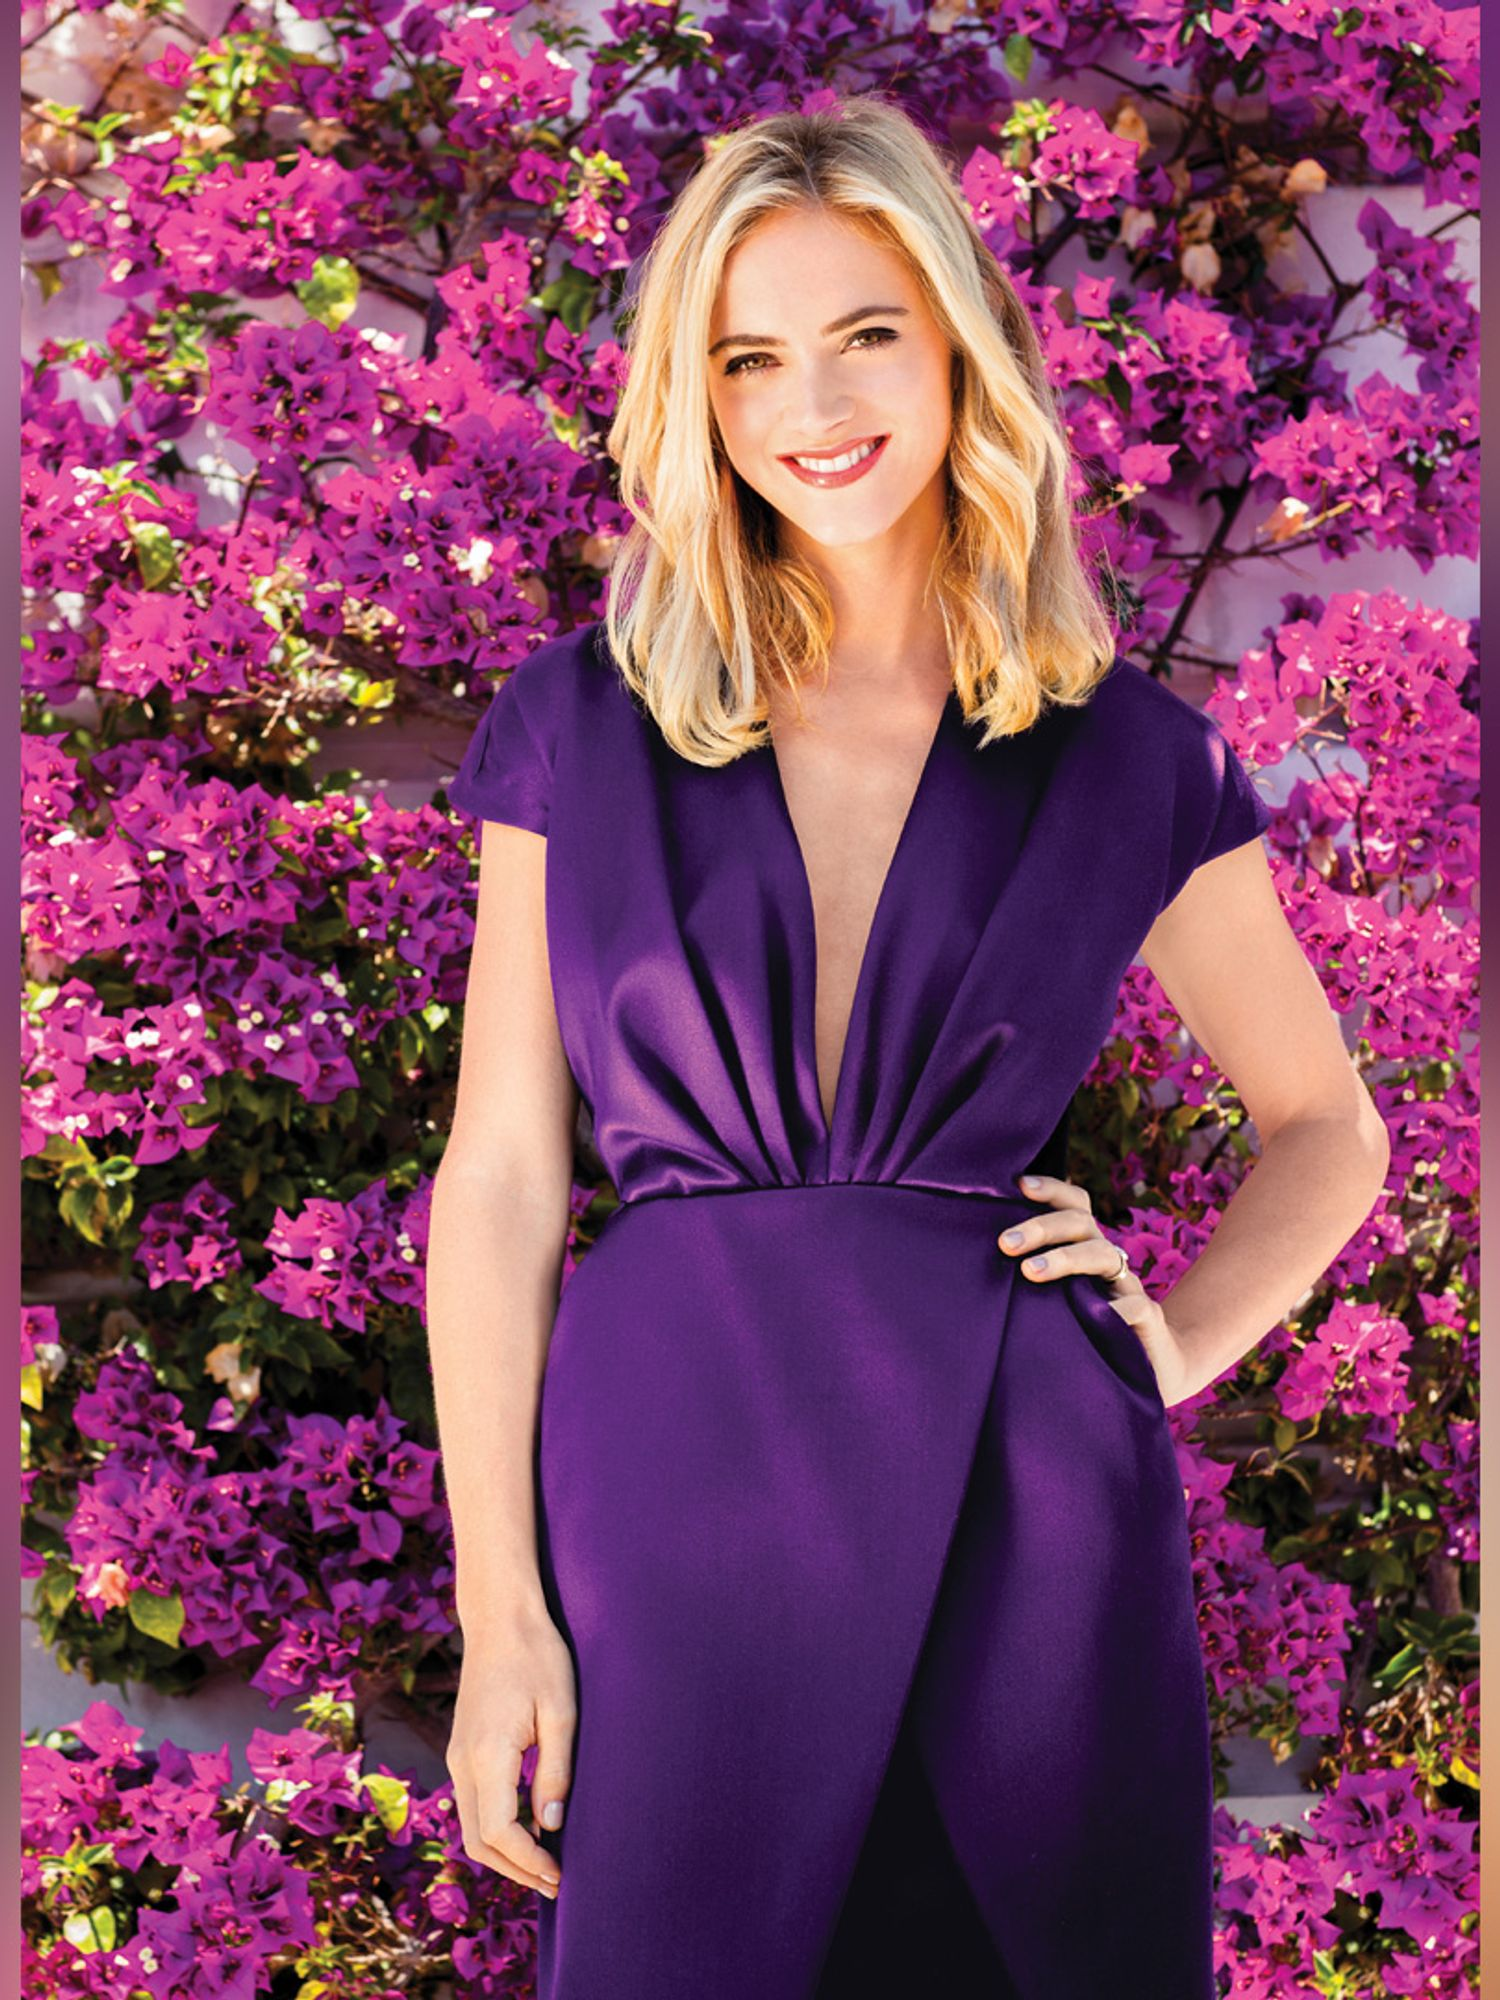 Emily Wickersham of NCIS in violet dress in front of flowers